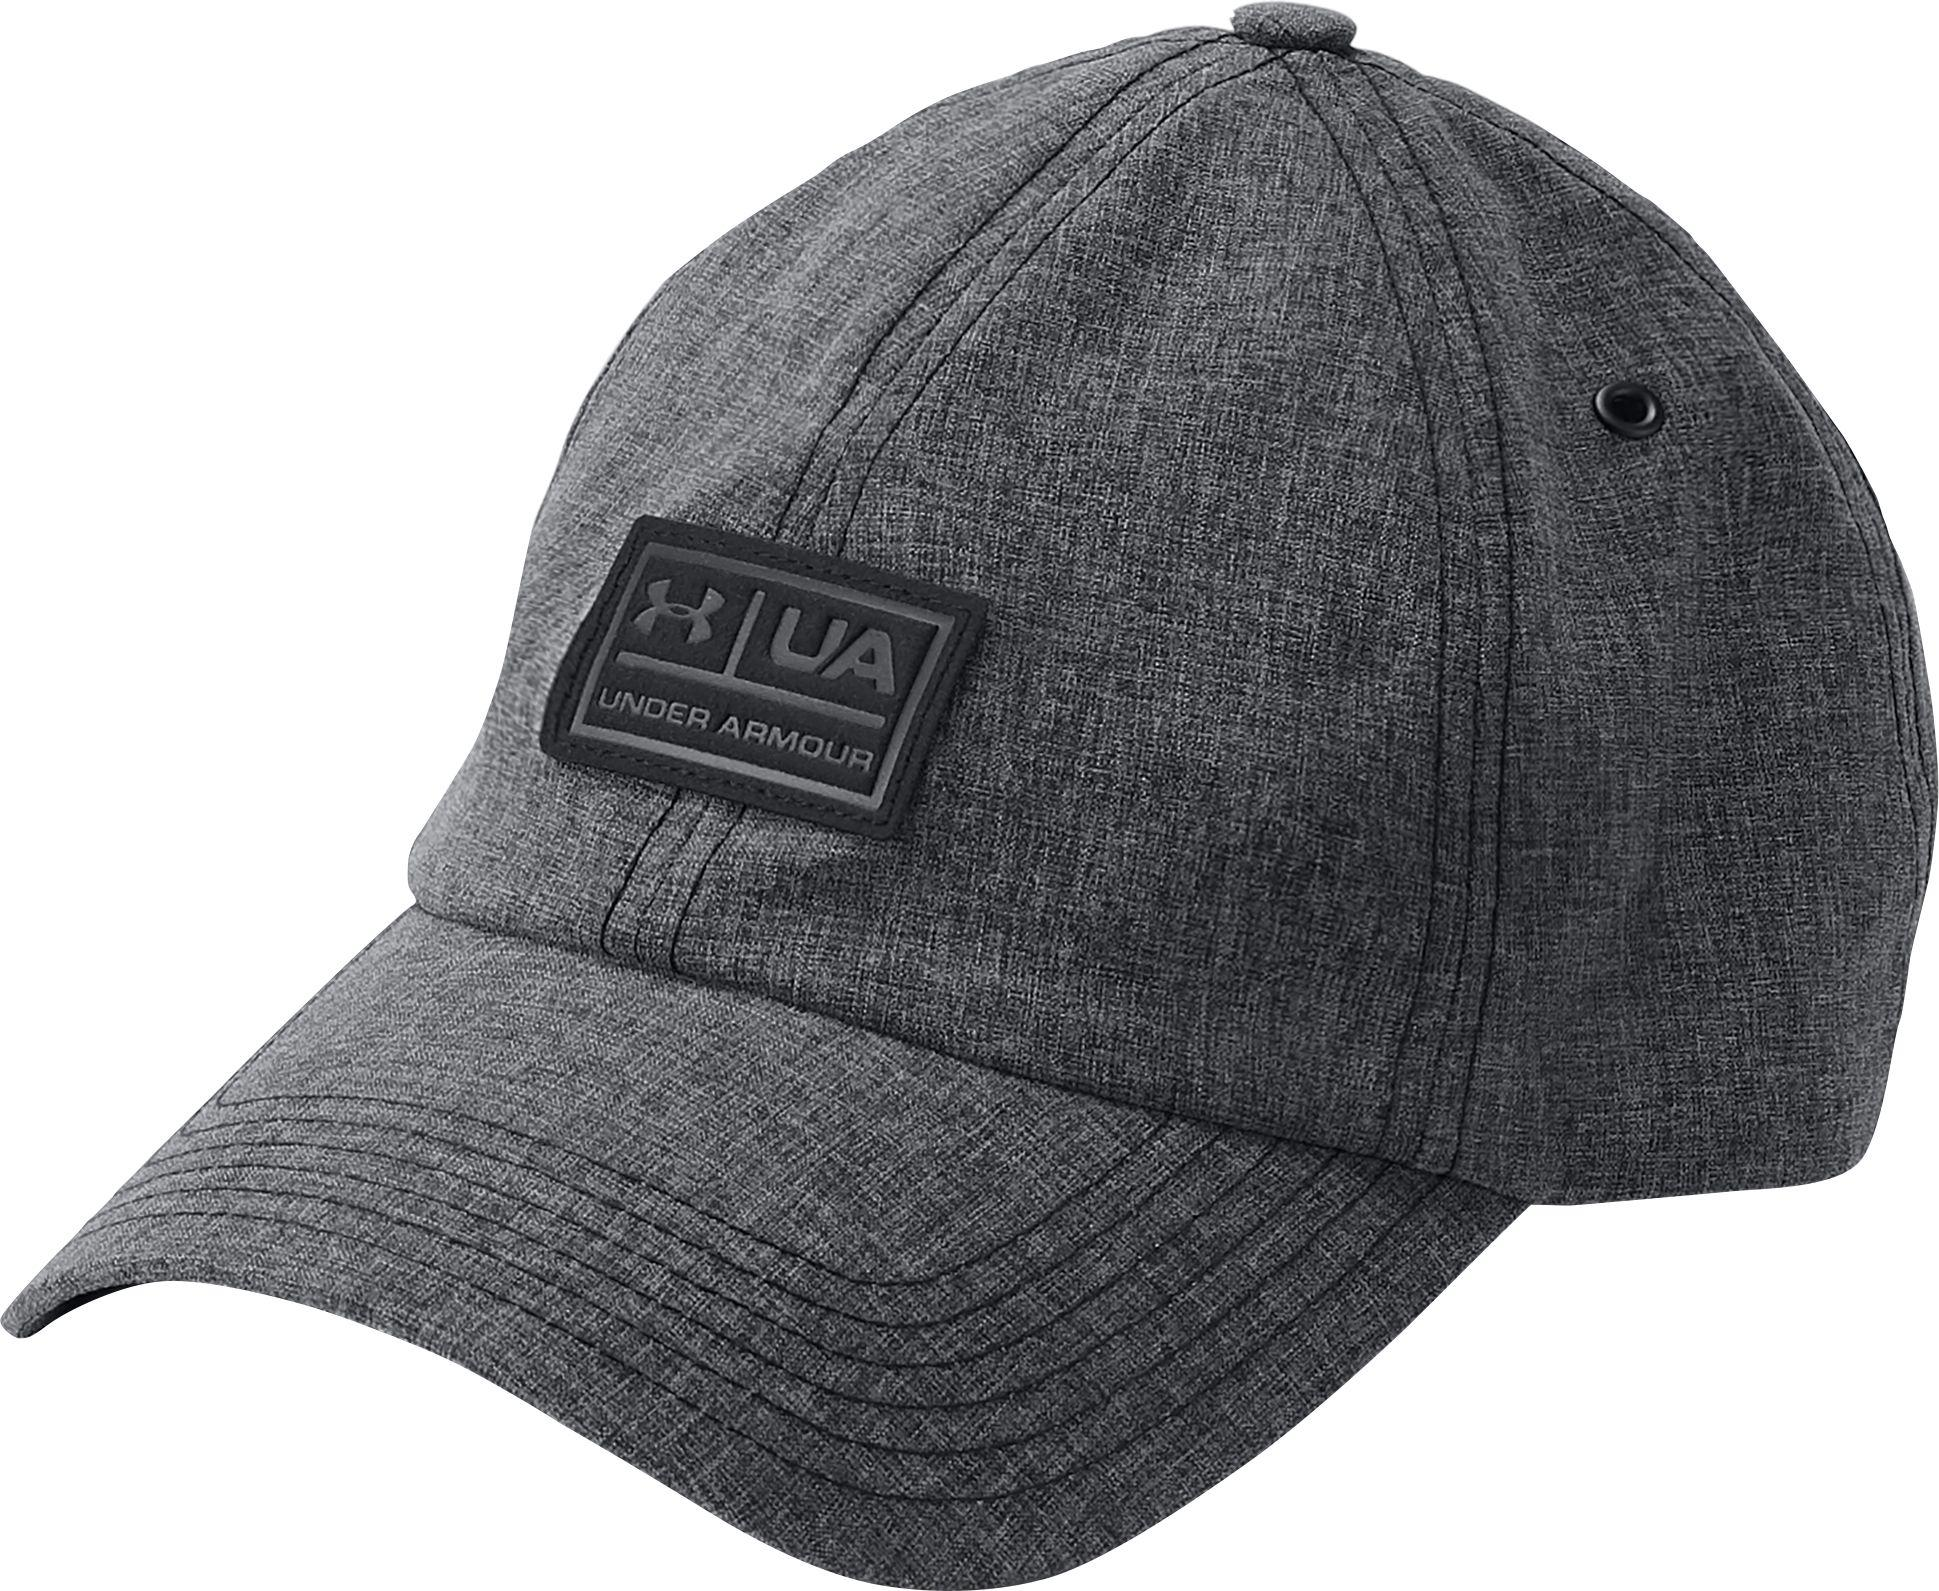 c835b161e4d8b0 Under Armour Perforated Lifestyle Dad Hat in Black for Men - Lyst